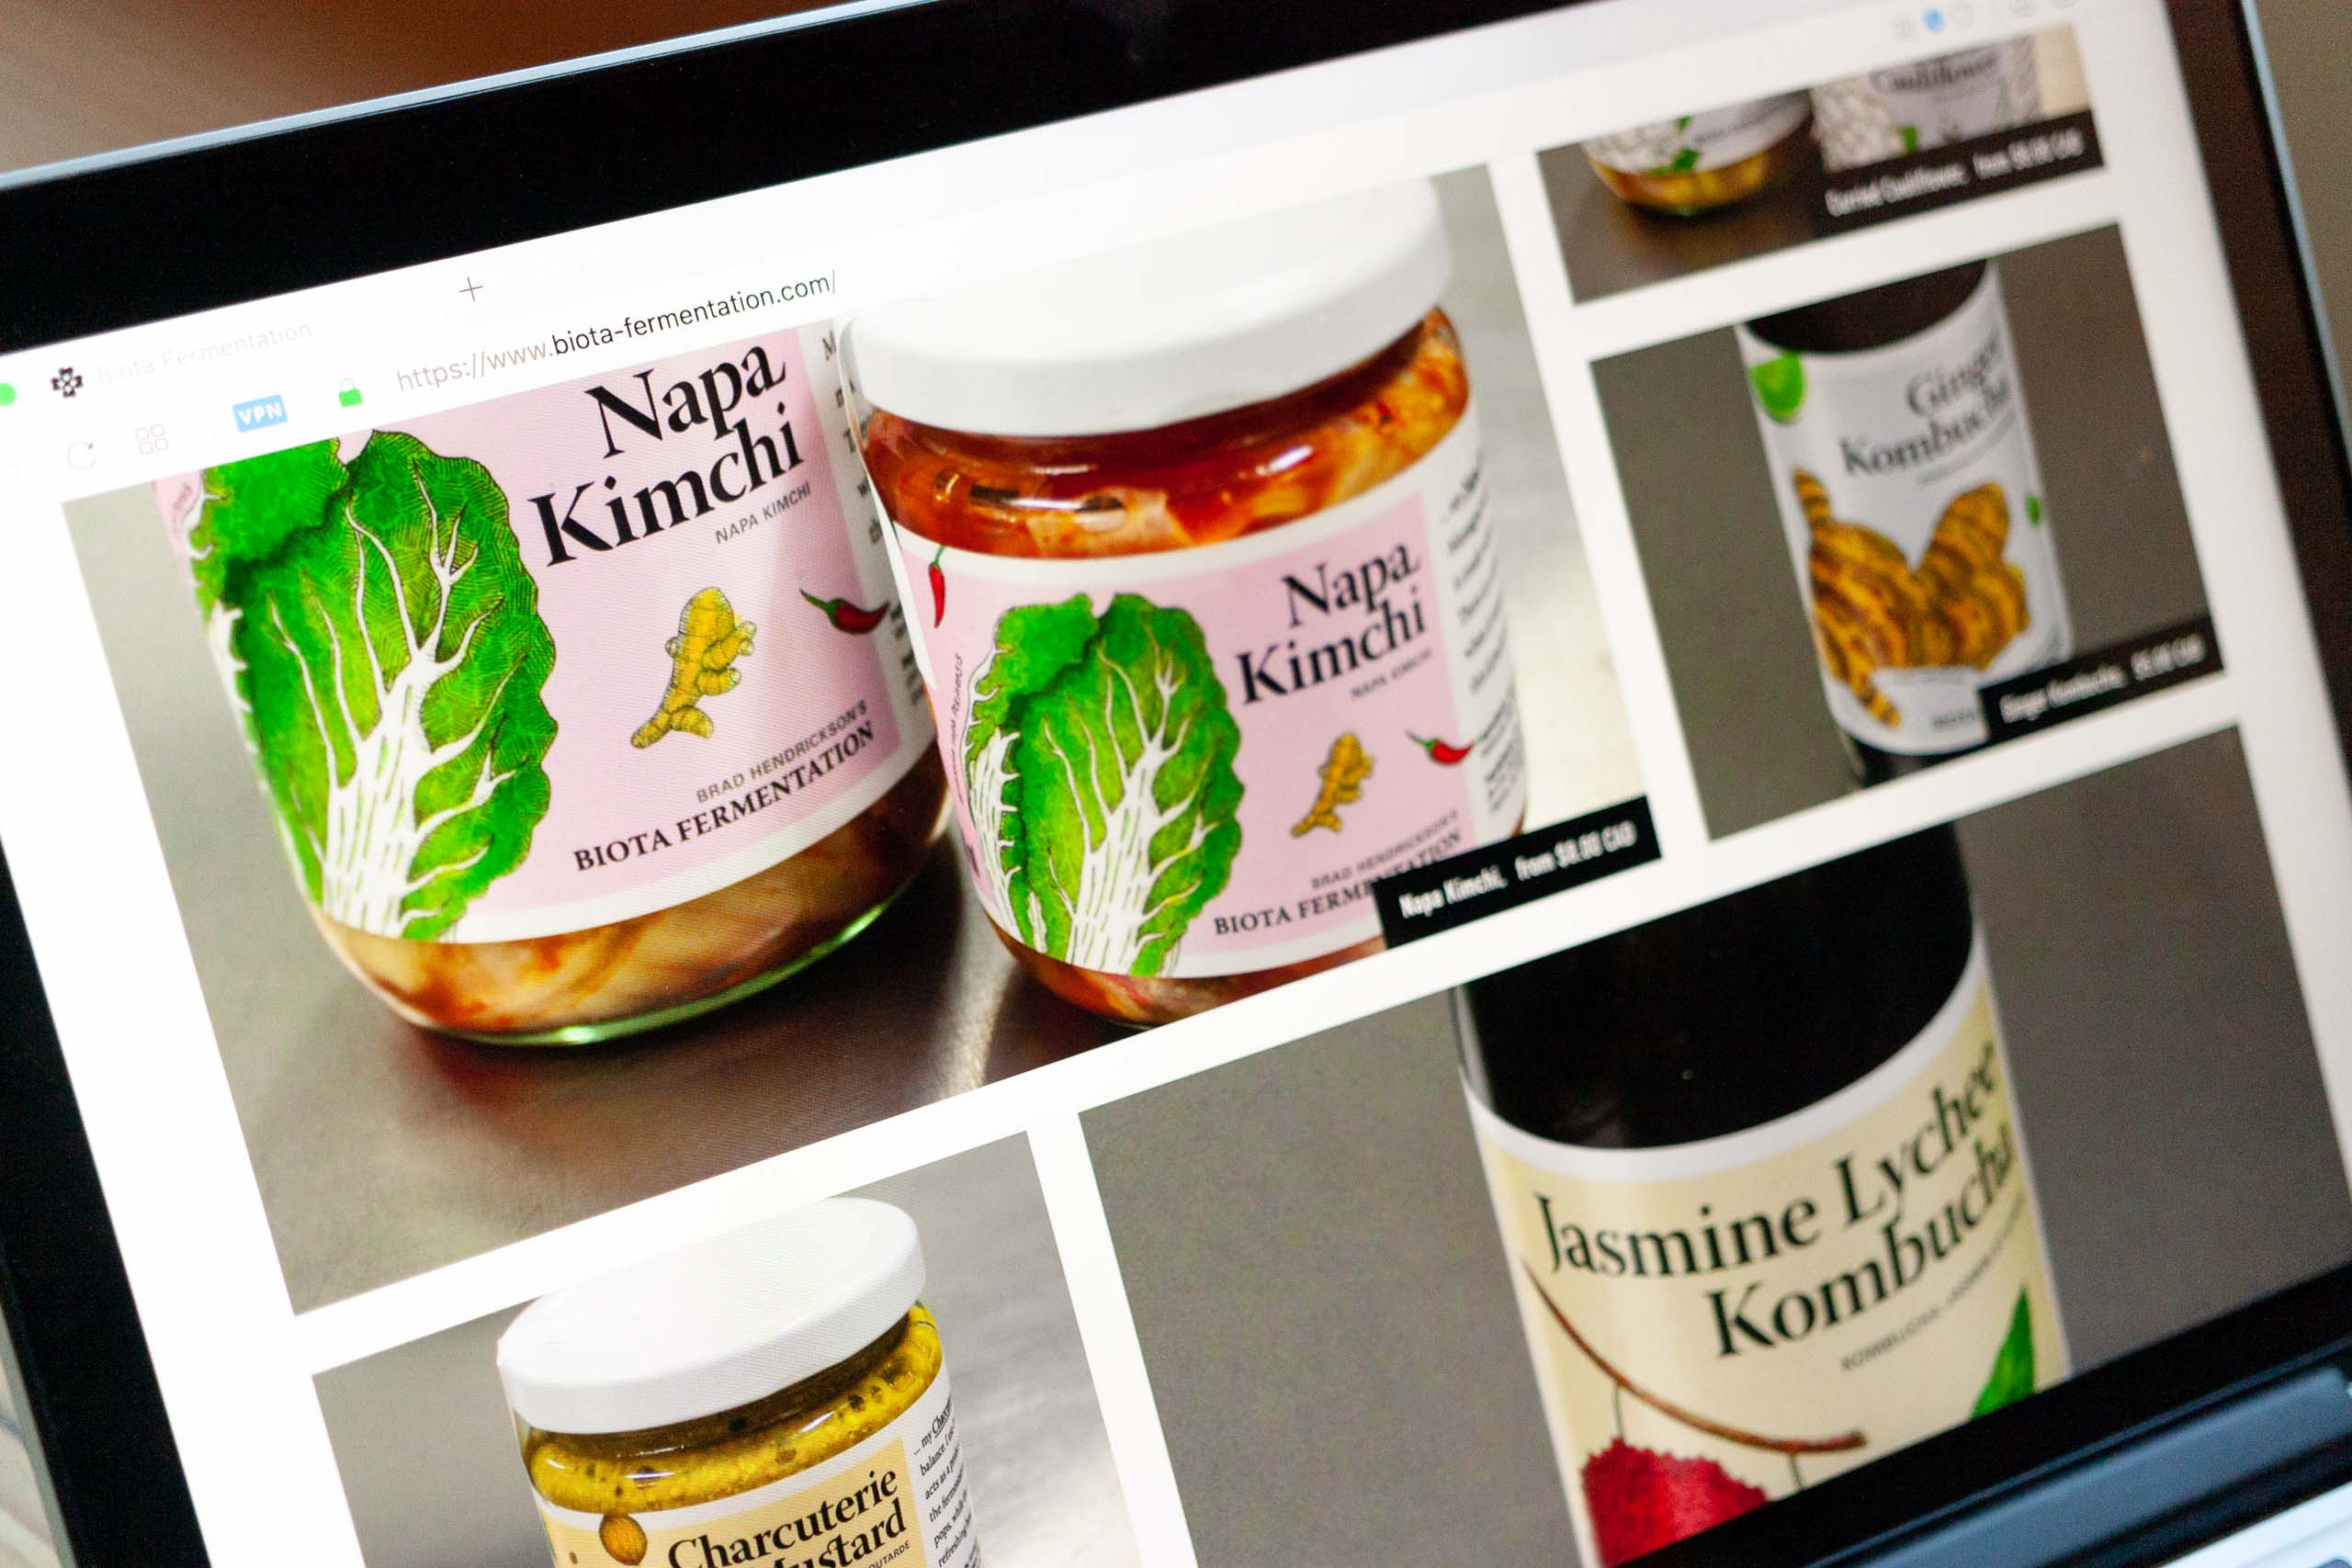 Product selection grid featuring photos of Kimchi Jars and Kombucha bottles — by Dima.